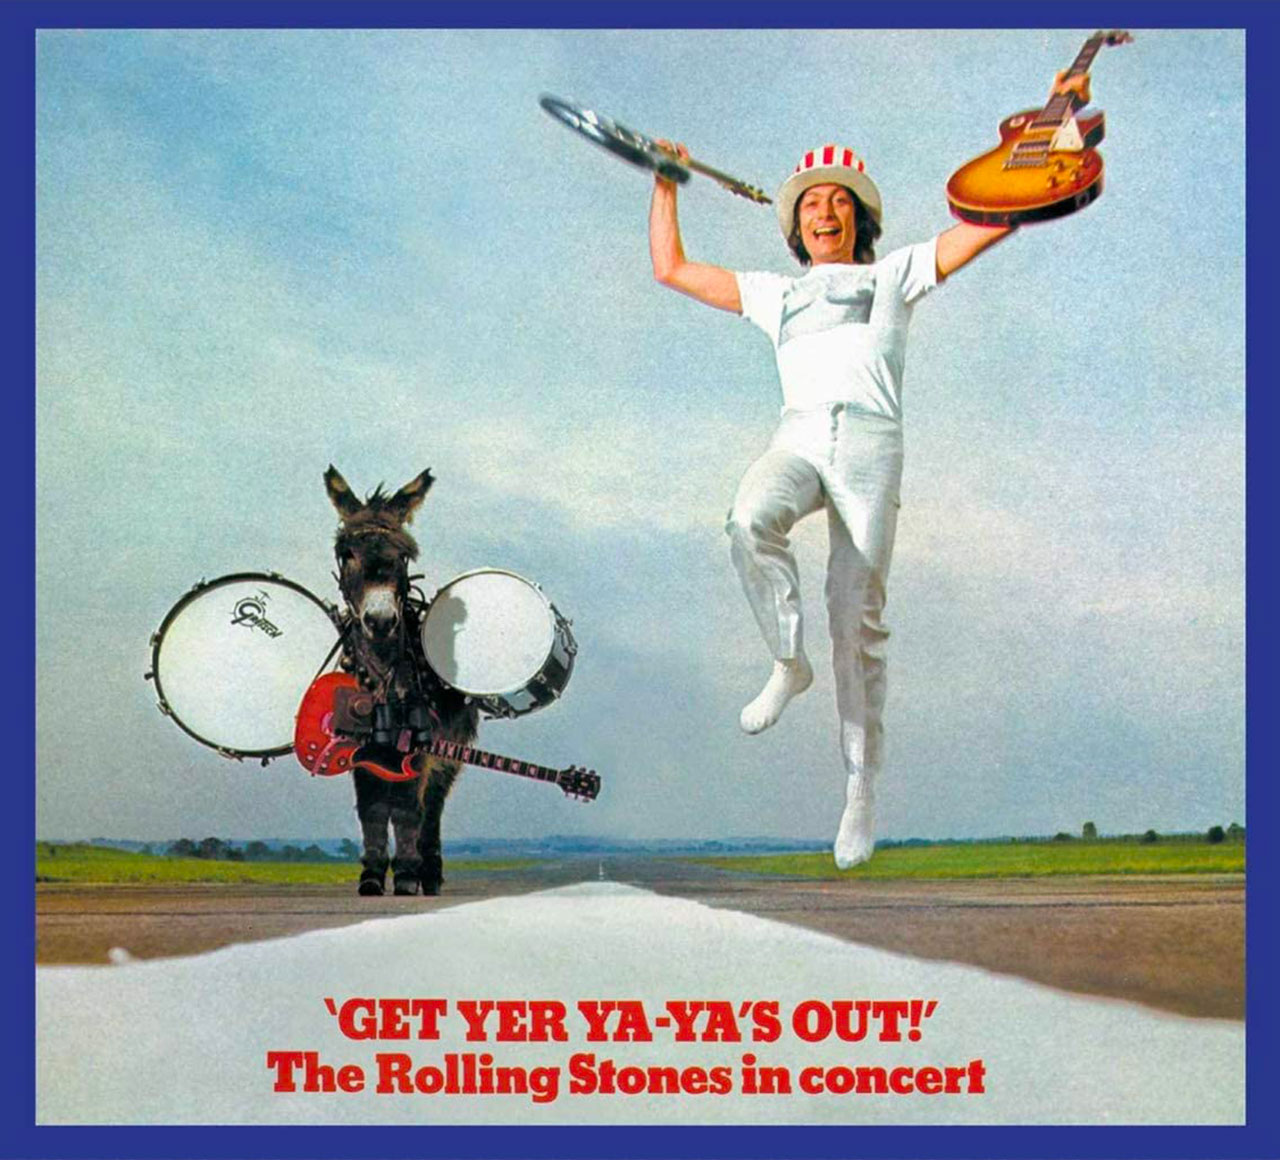 The Rolling Stones - Get Yer Ya-Ya's Out! cover album